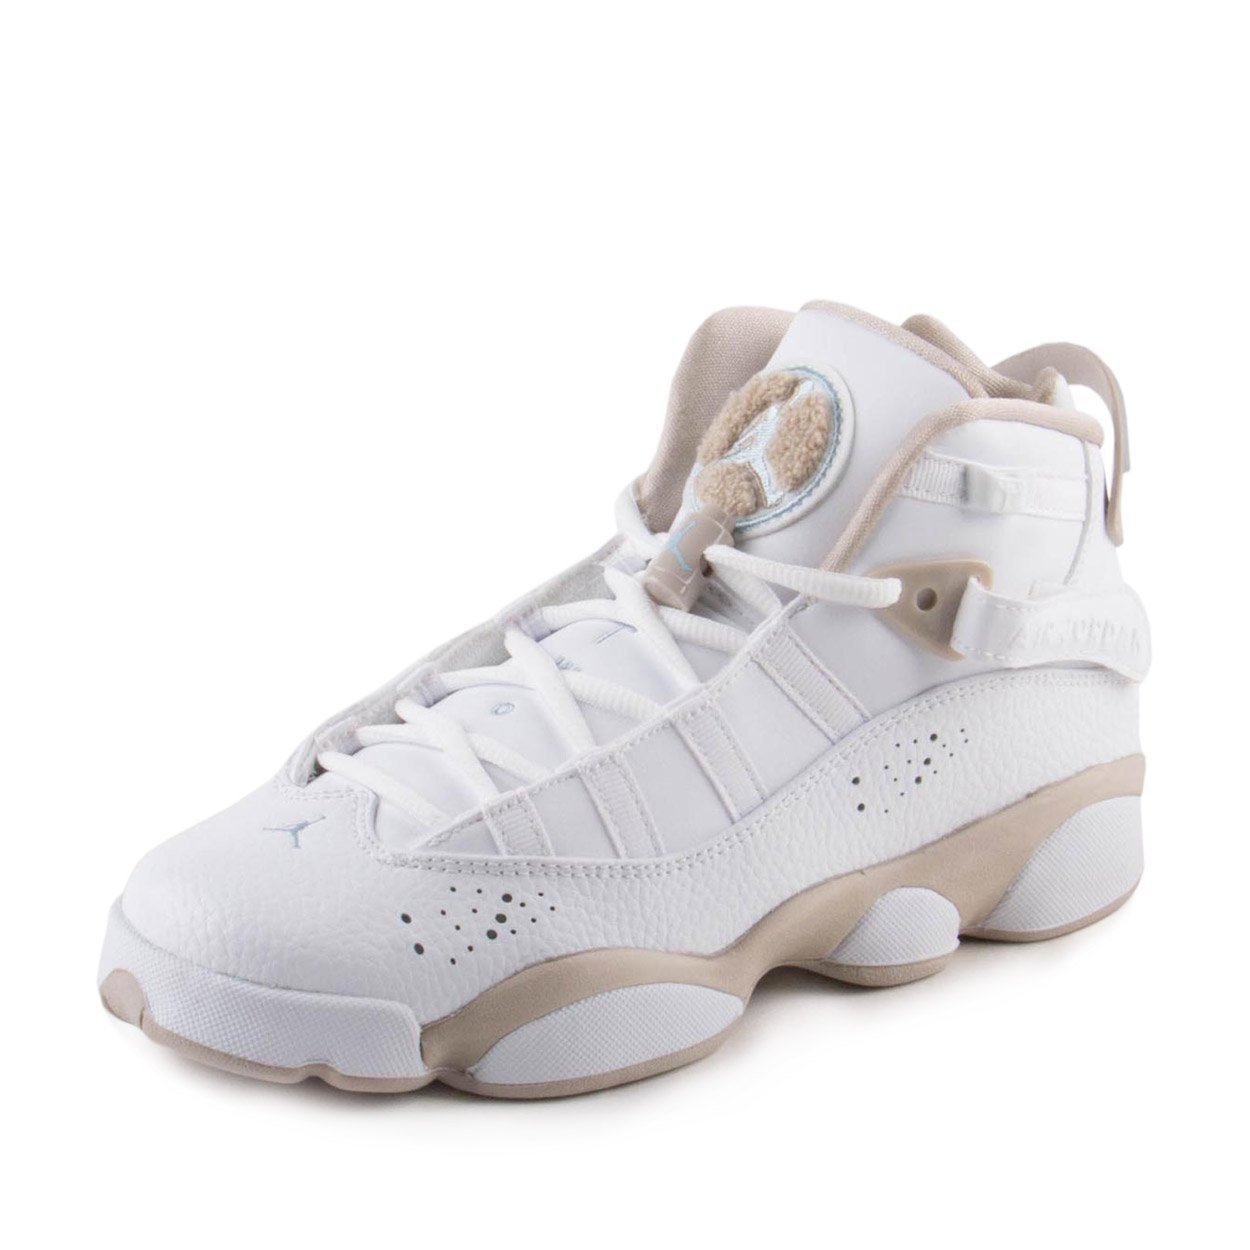 competitive price 15553 6ceed Jordan Nike Boys 6 Rings GG White/Sand Leather Size 4Y